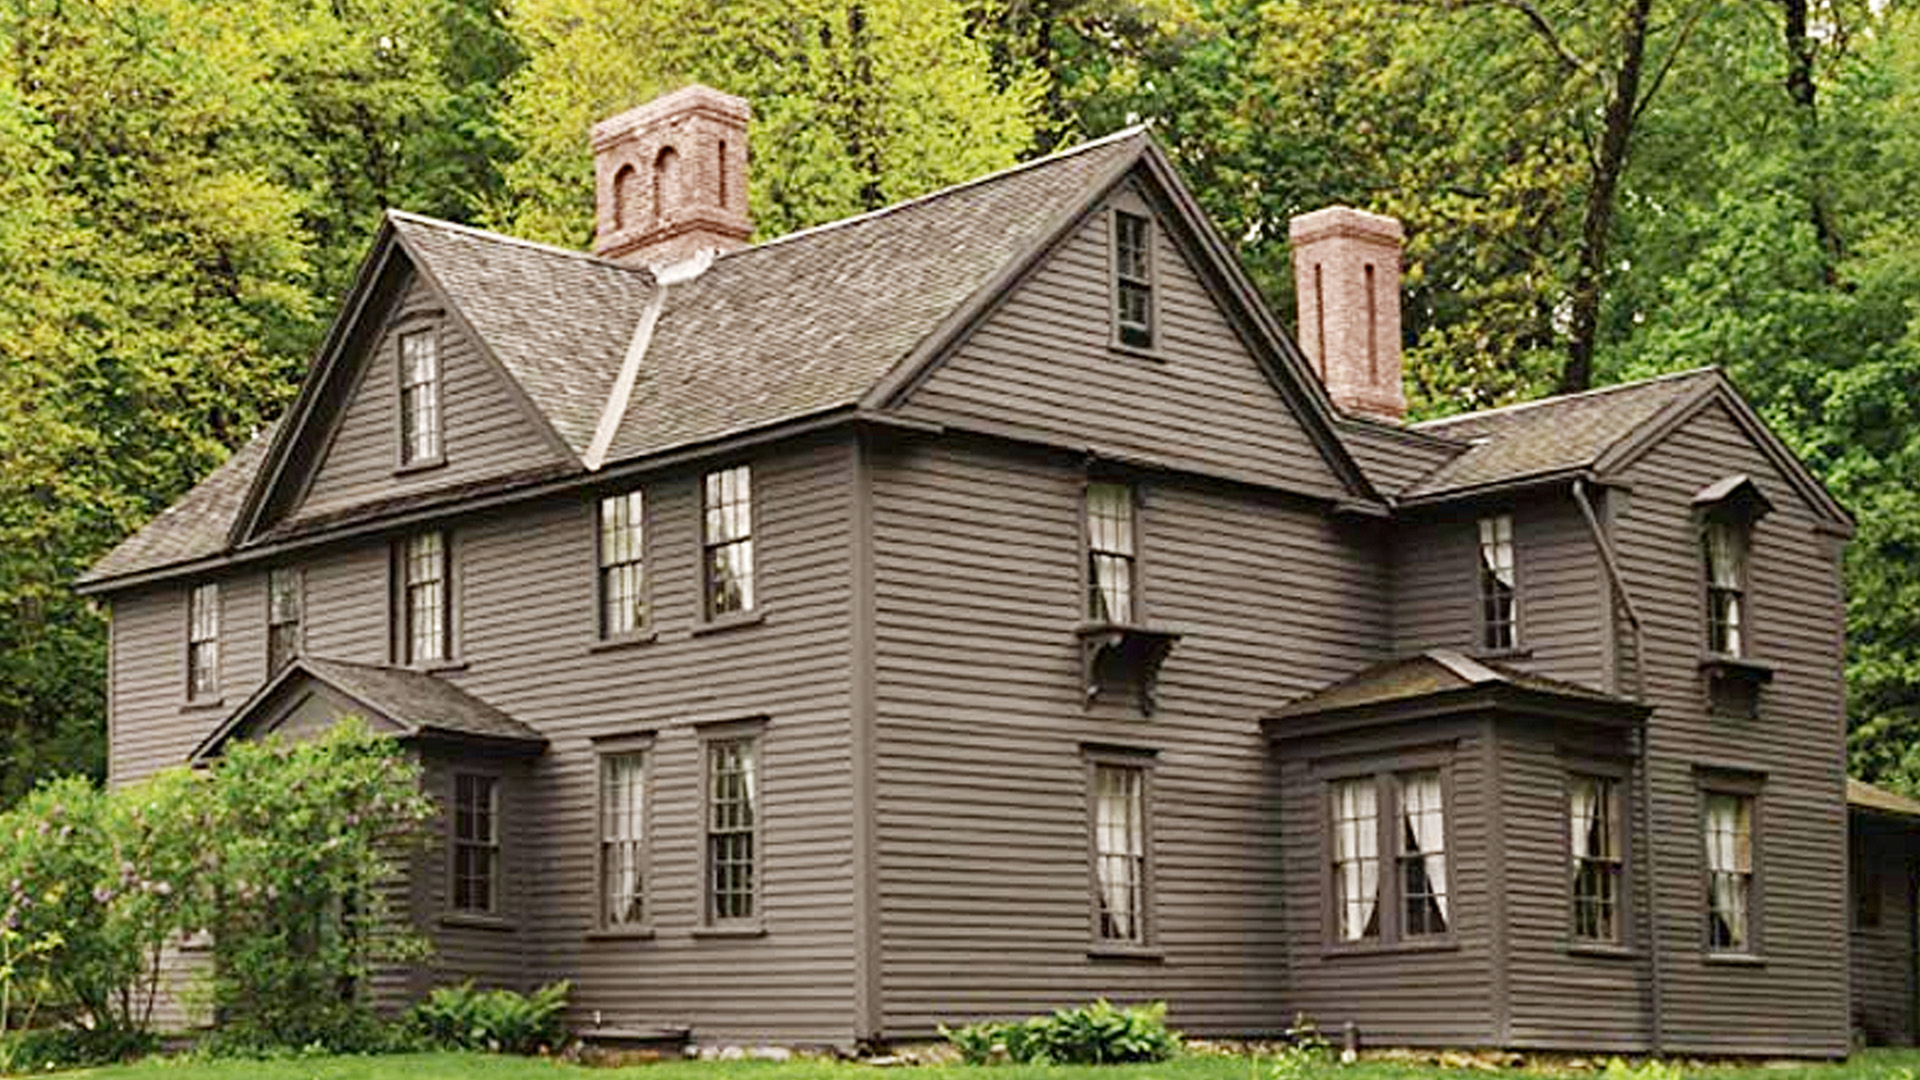 Orchard House - Home of Little Women on Amazon Prime Video UK